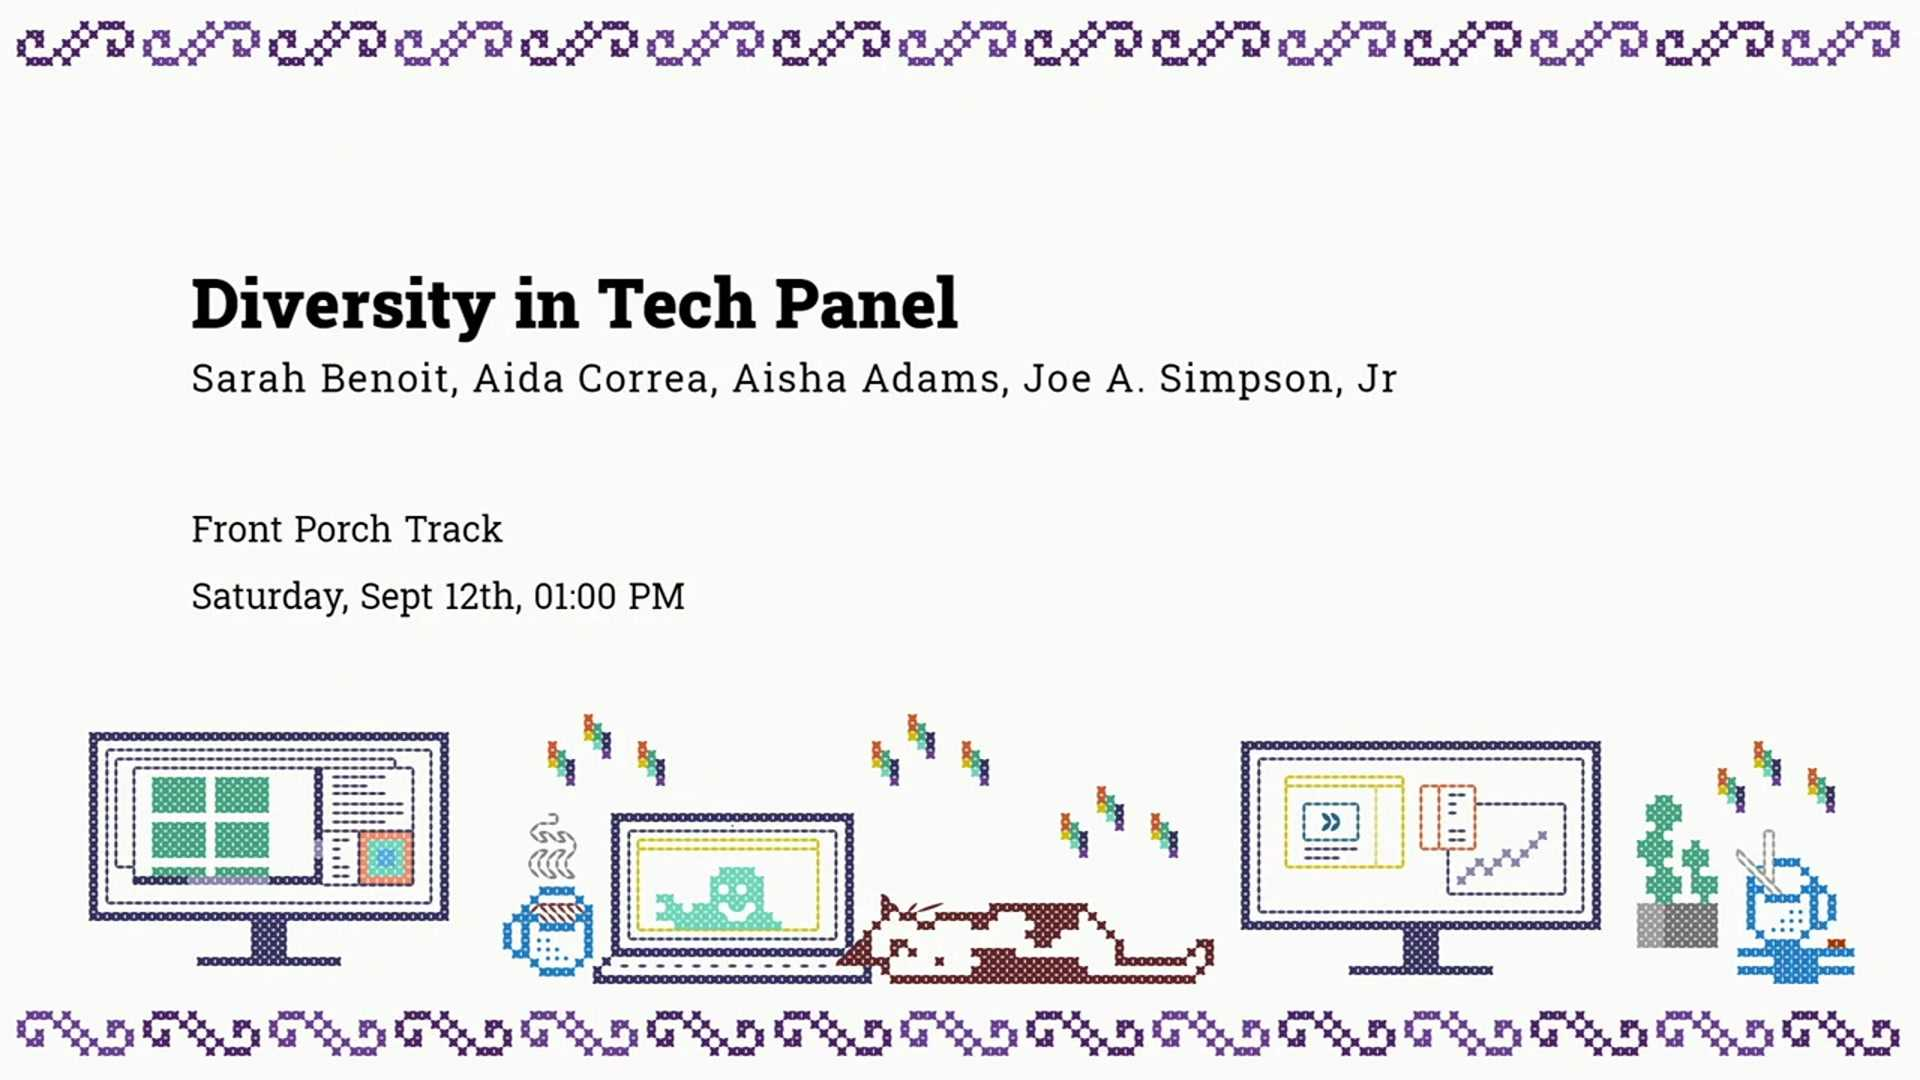 Diversity in Tech Panel Discussion